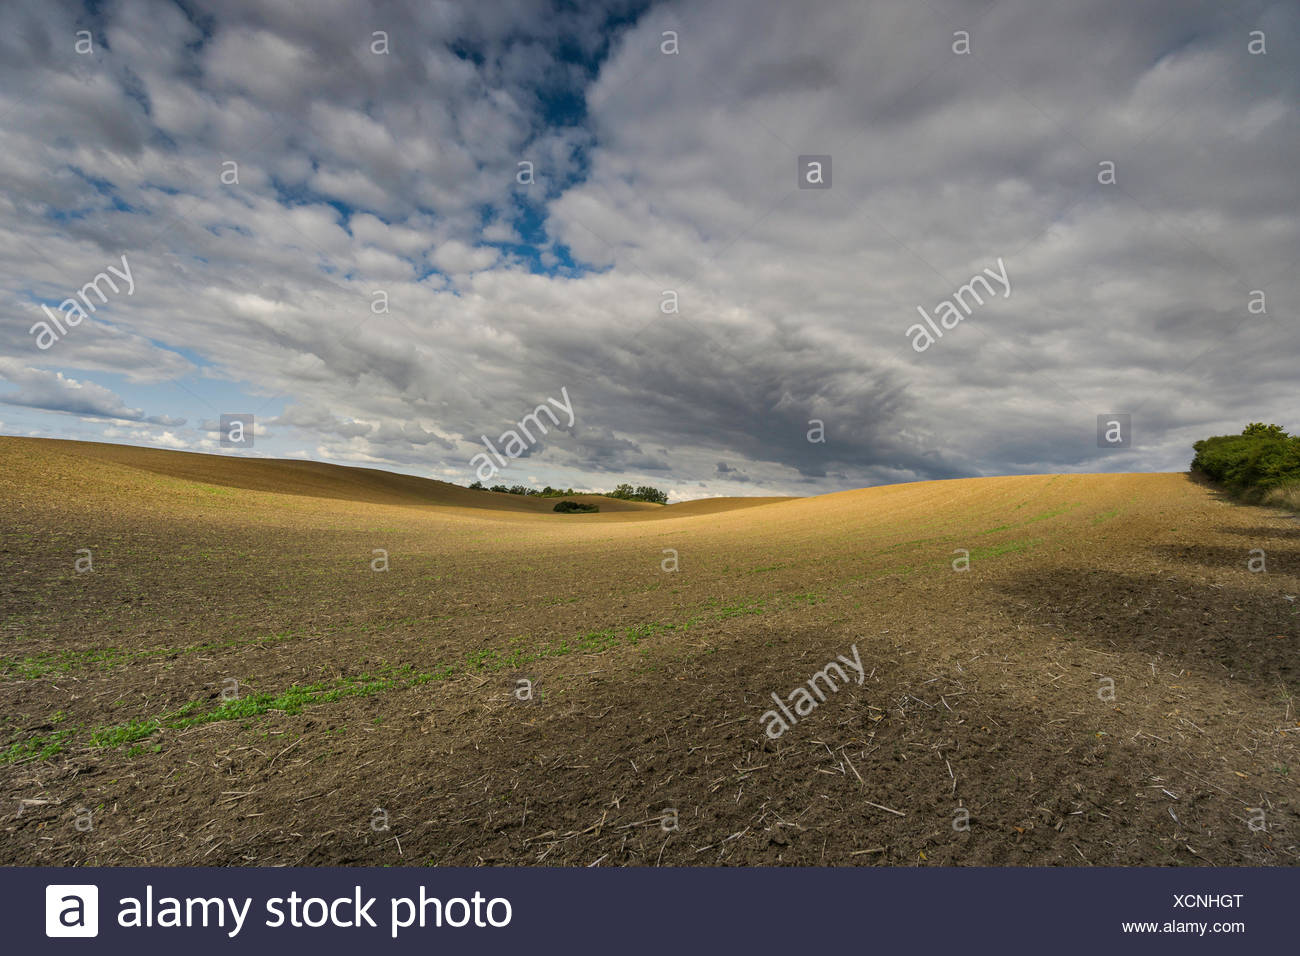 clouds on a harvested field,wandering shadow on the field and bizarre cloud formations Stock Photo